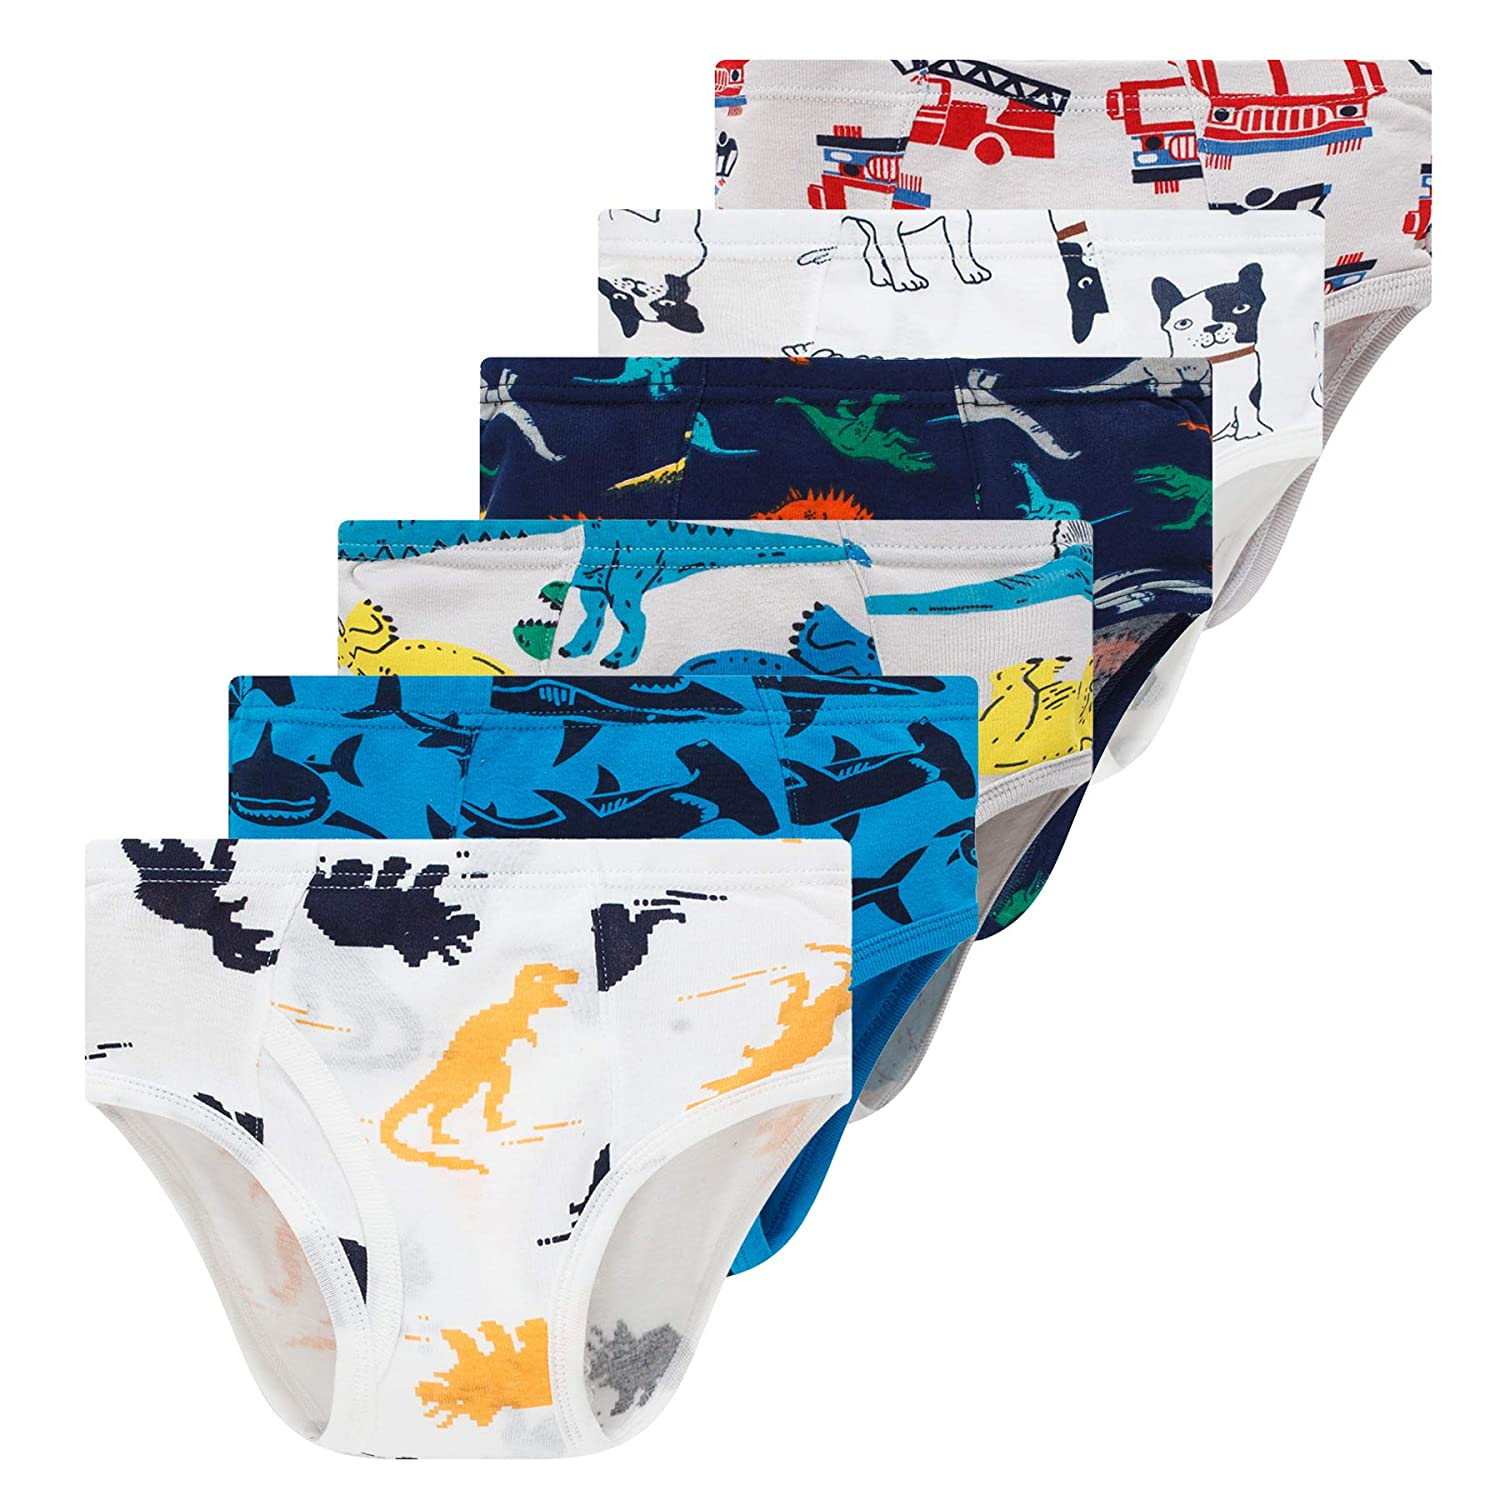 Winging Day Little Boys Cotton Brief Soft Underwear Multipack